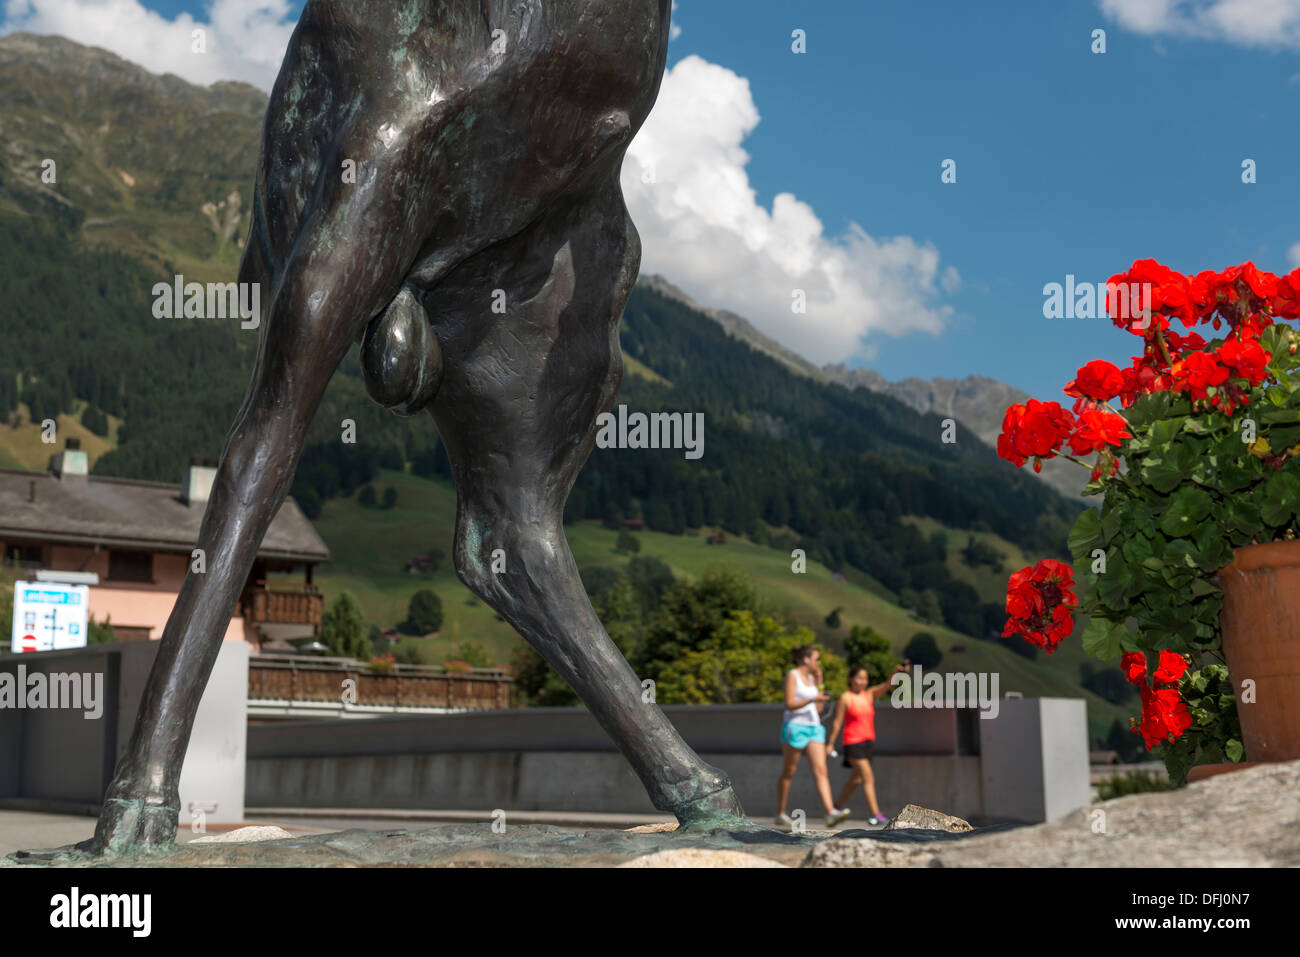 Two women walking past the genitalia area  of a male mountain goat or Alpine ibex statue. Klosters. Graubunden. Switzerland - Stock Image